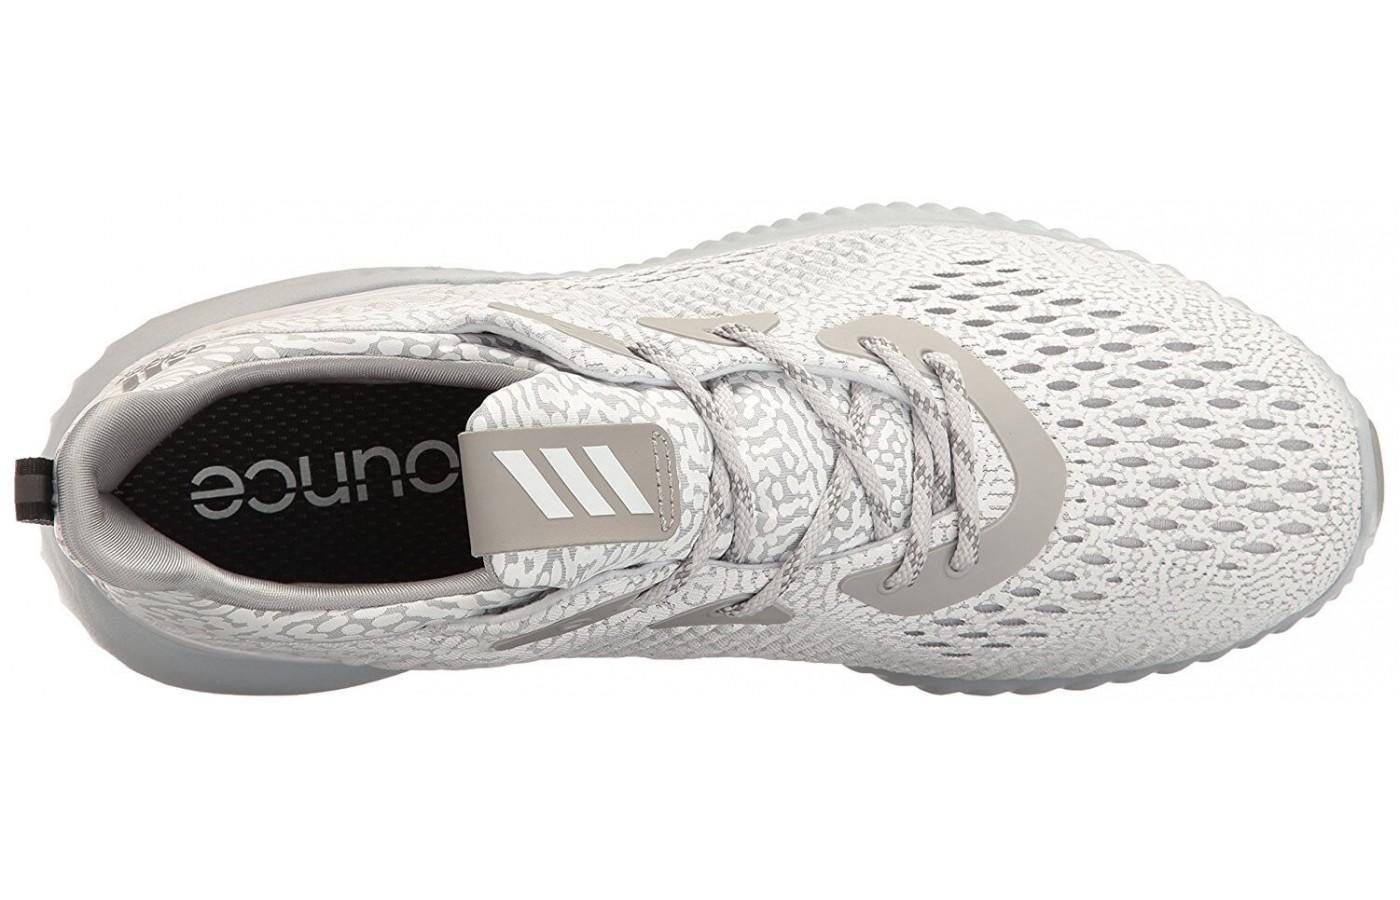 Adidas Alphabounce AMS features removable insoles